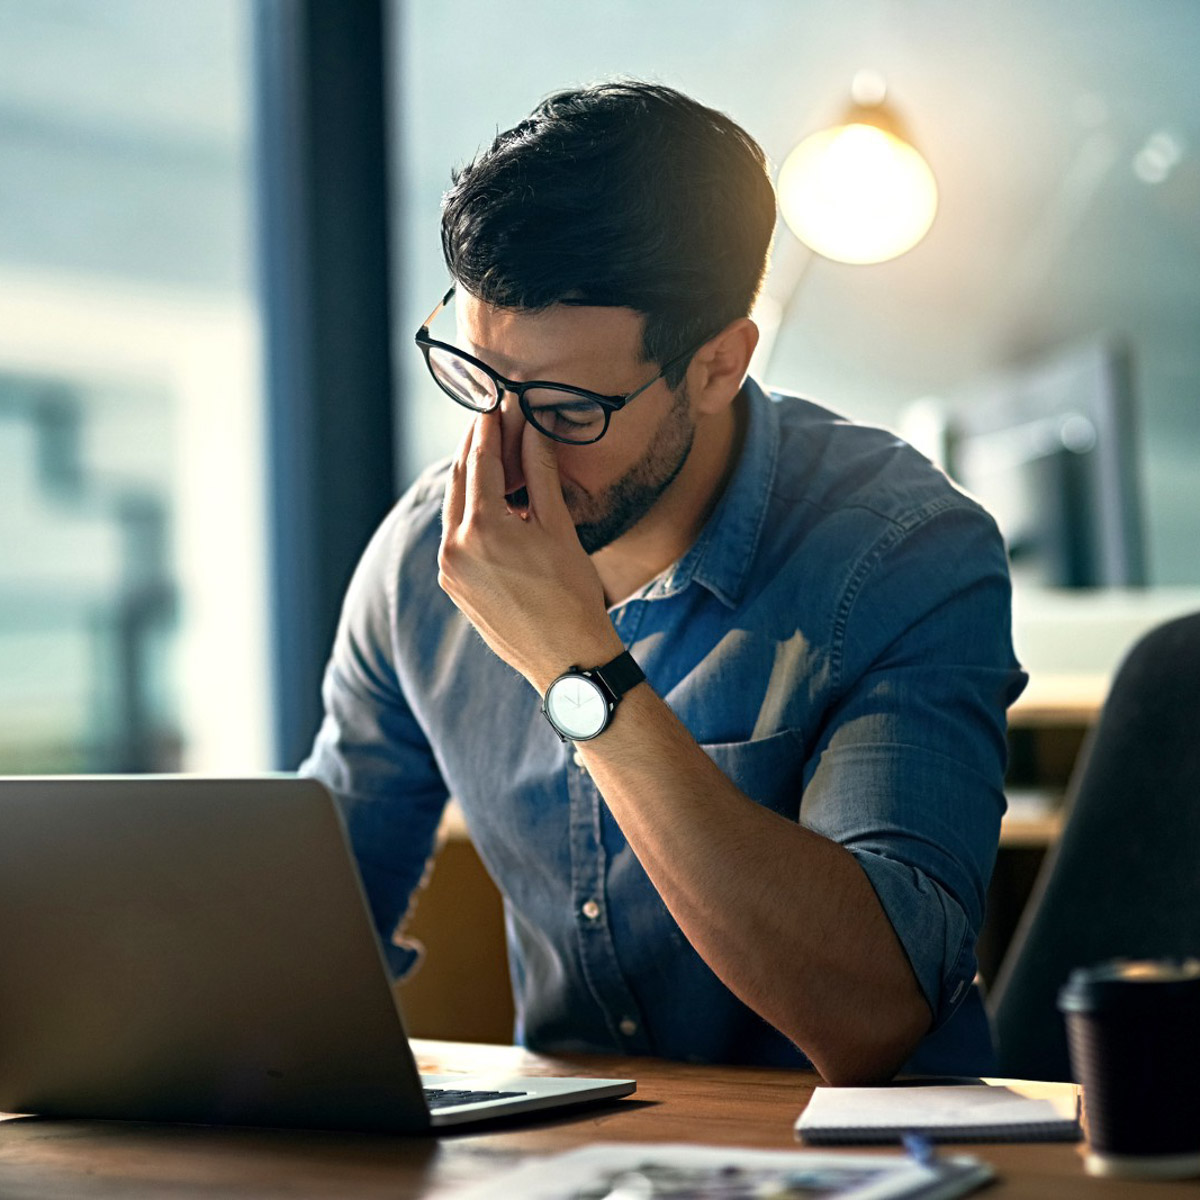 causes-of-burnout-stress-man-for-himself